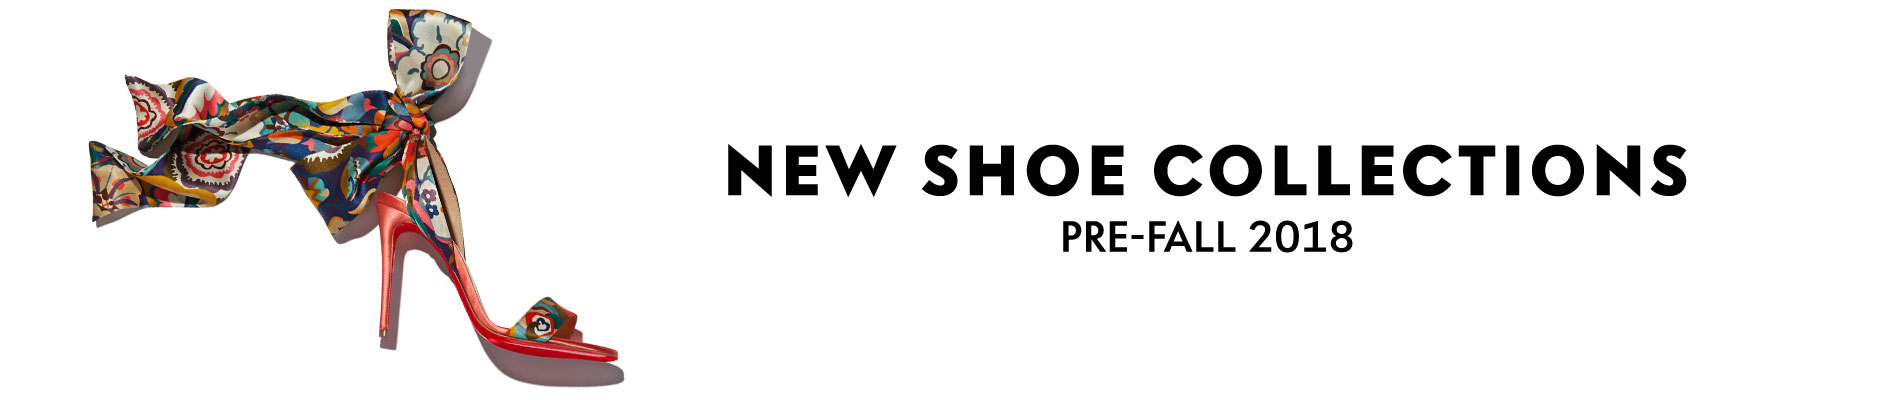 New Shoe Collections - Pre-Fall 2018